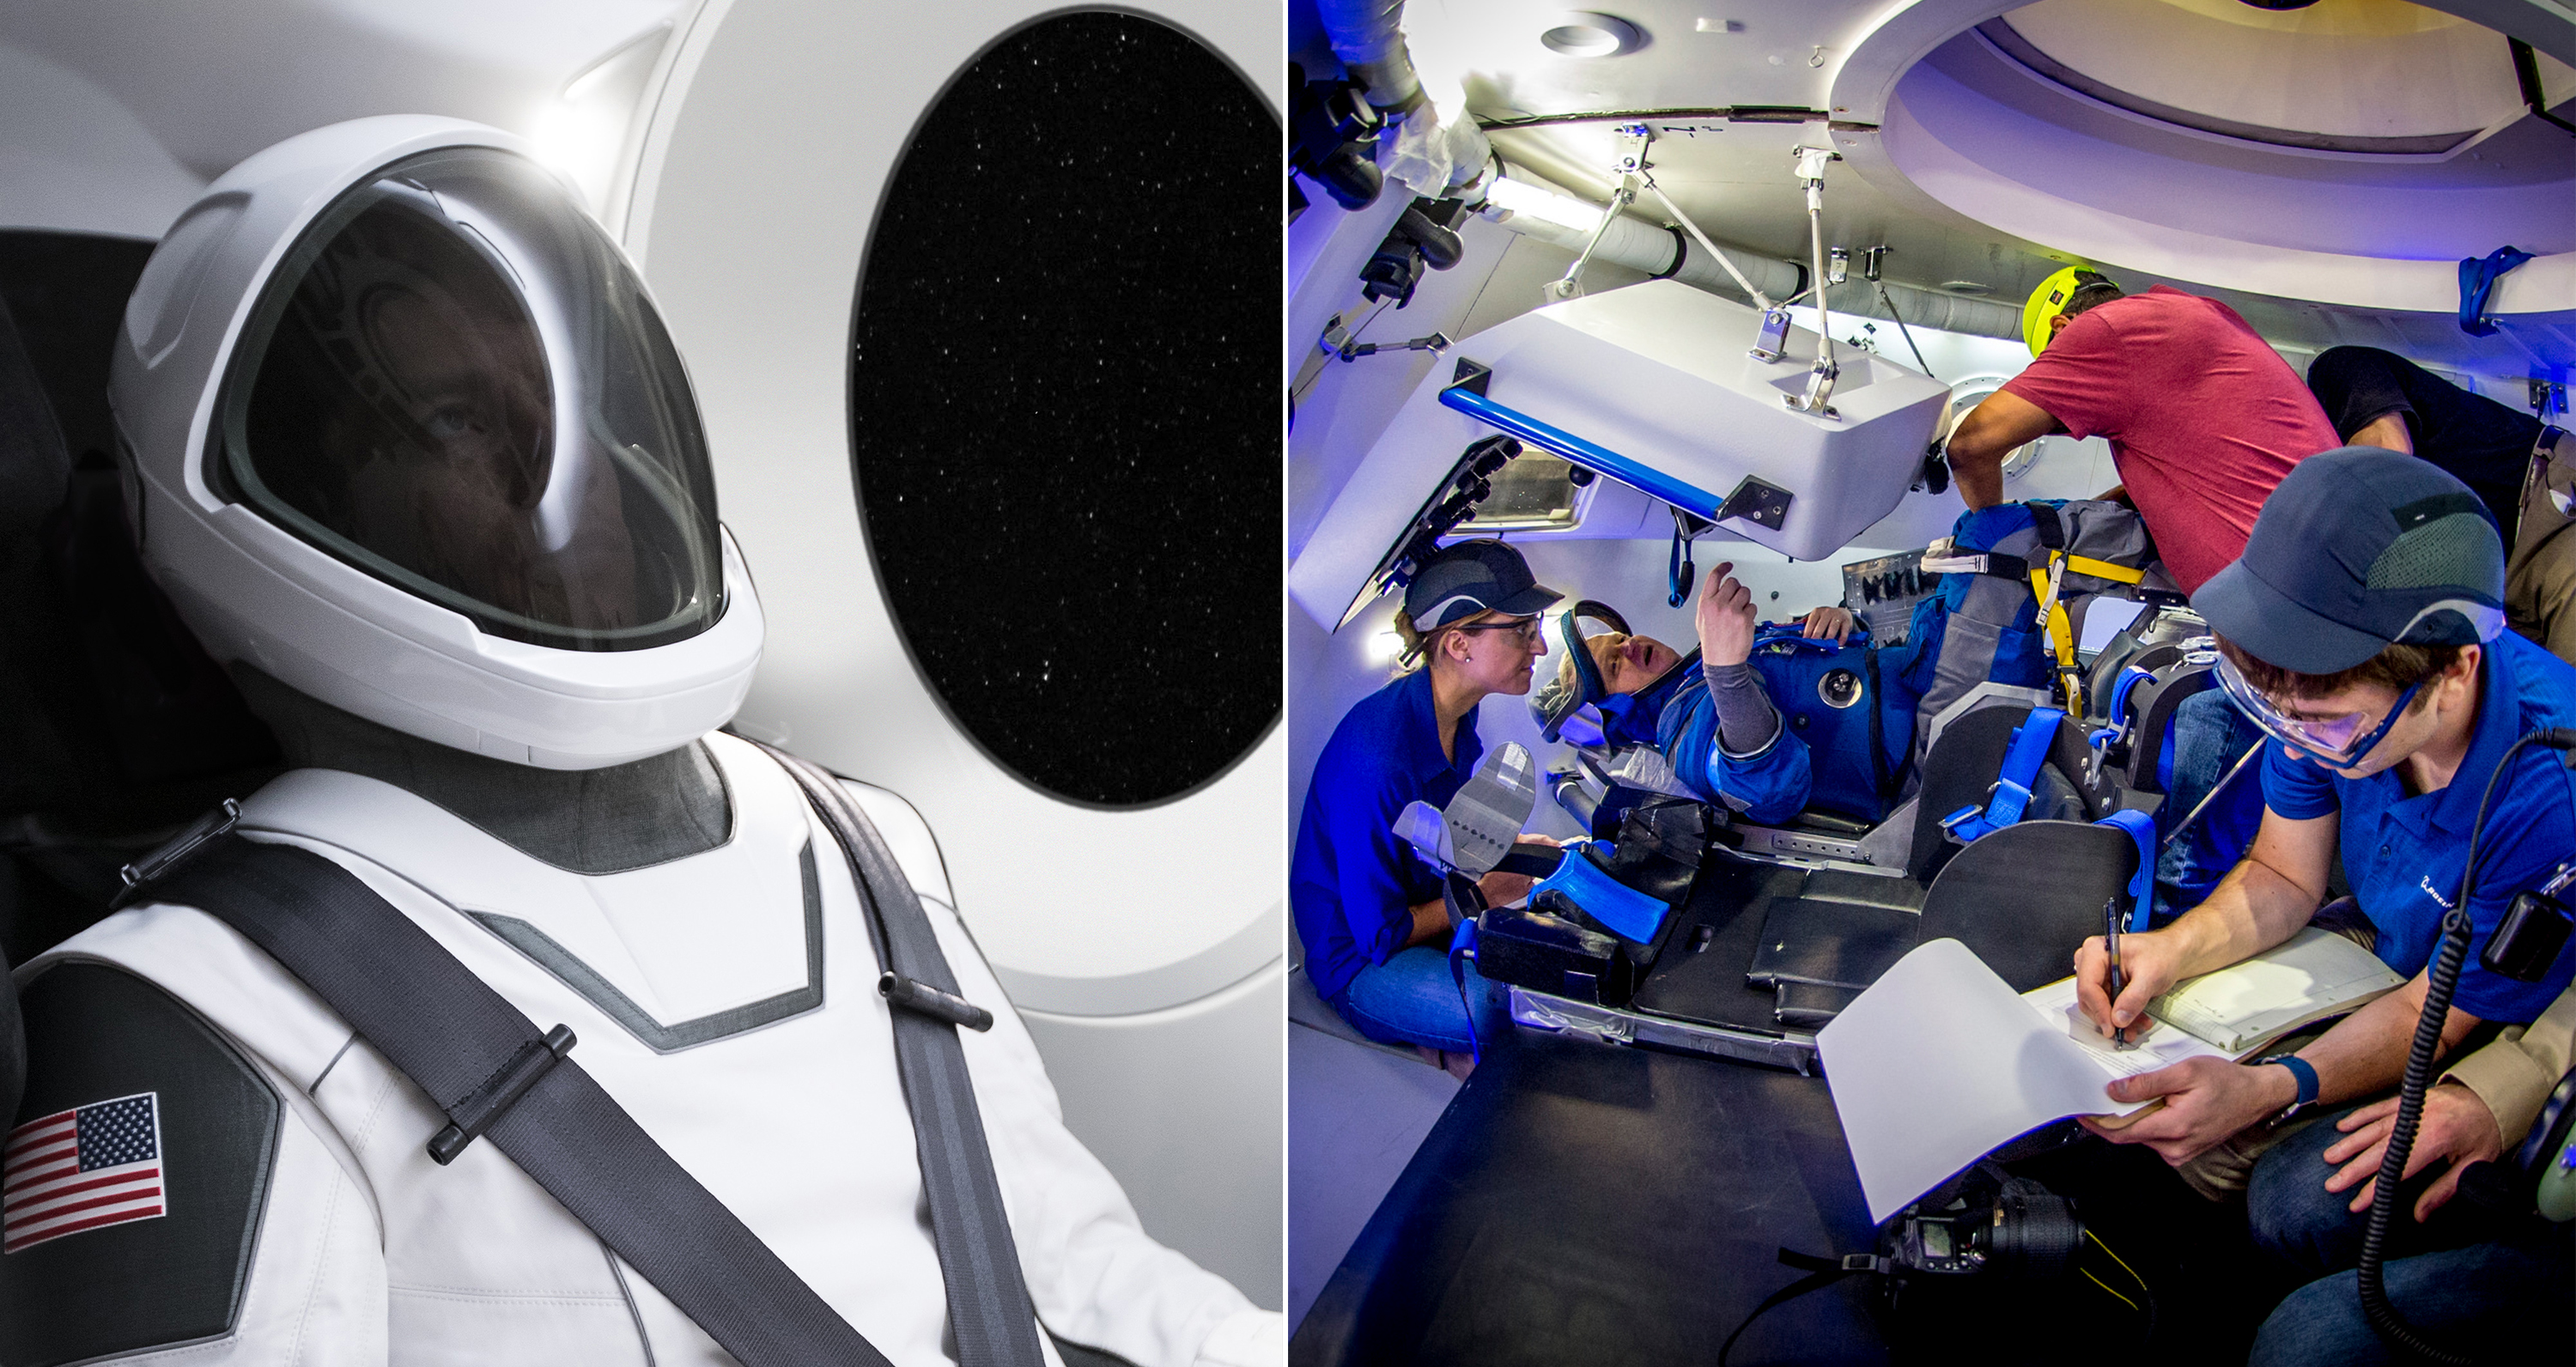 In this composite image, at left, an astronaut wears the SpaceX spacesuit design. At right, an astronaut wears the Boeing spacesuit design.